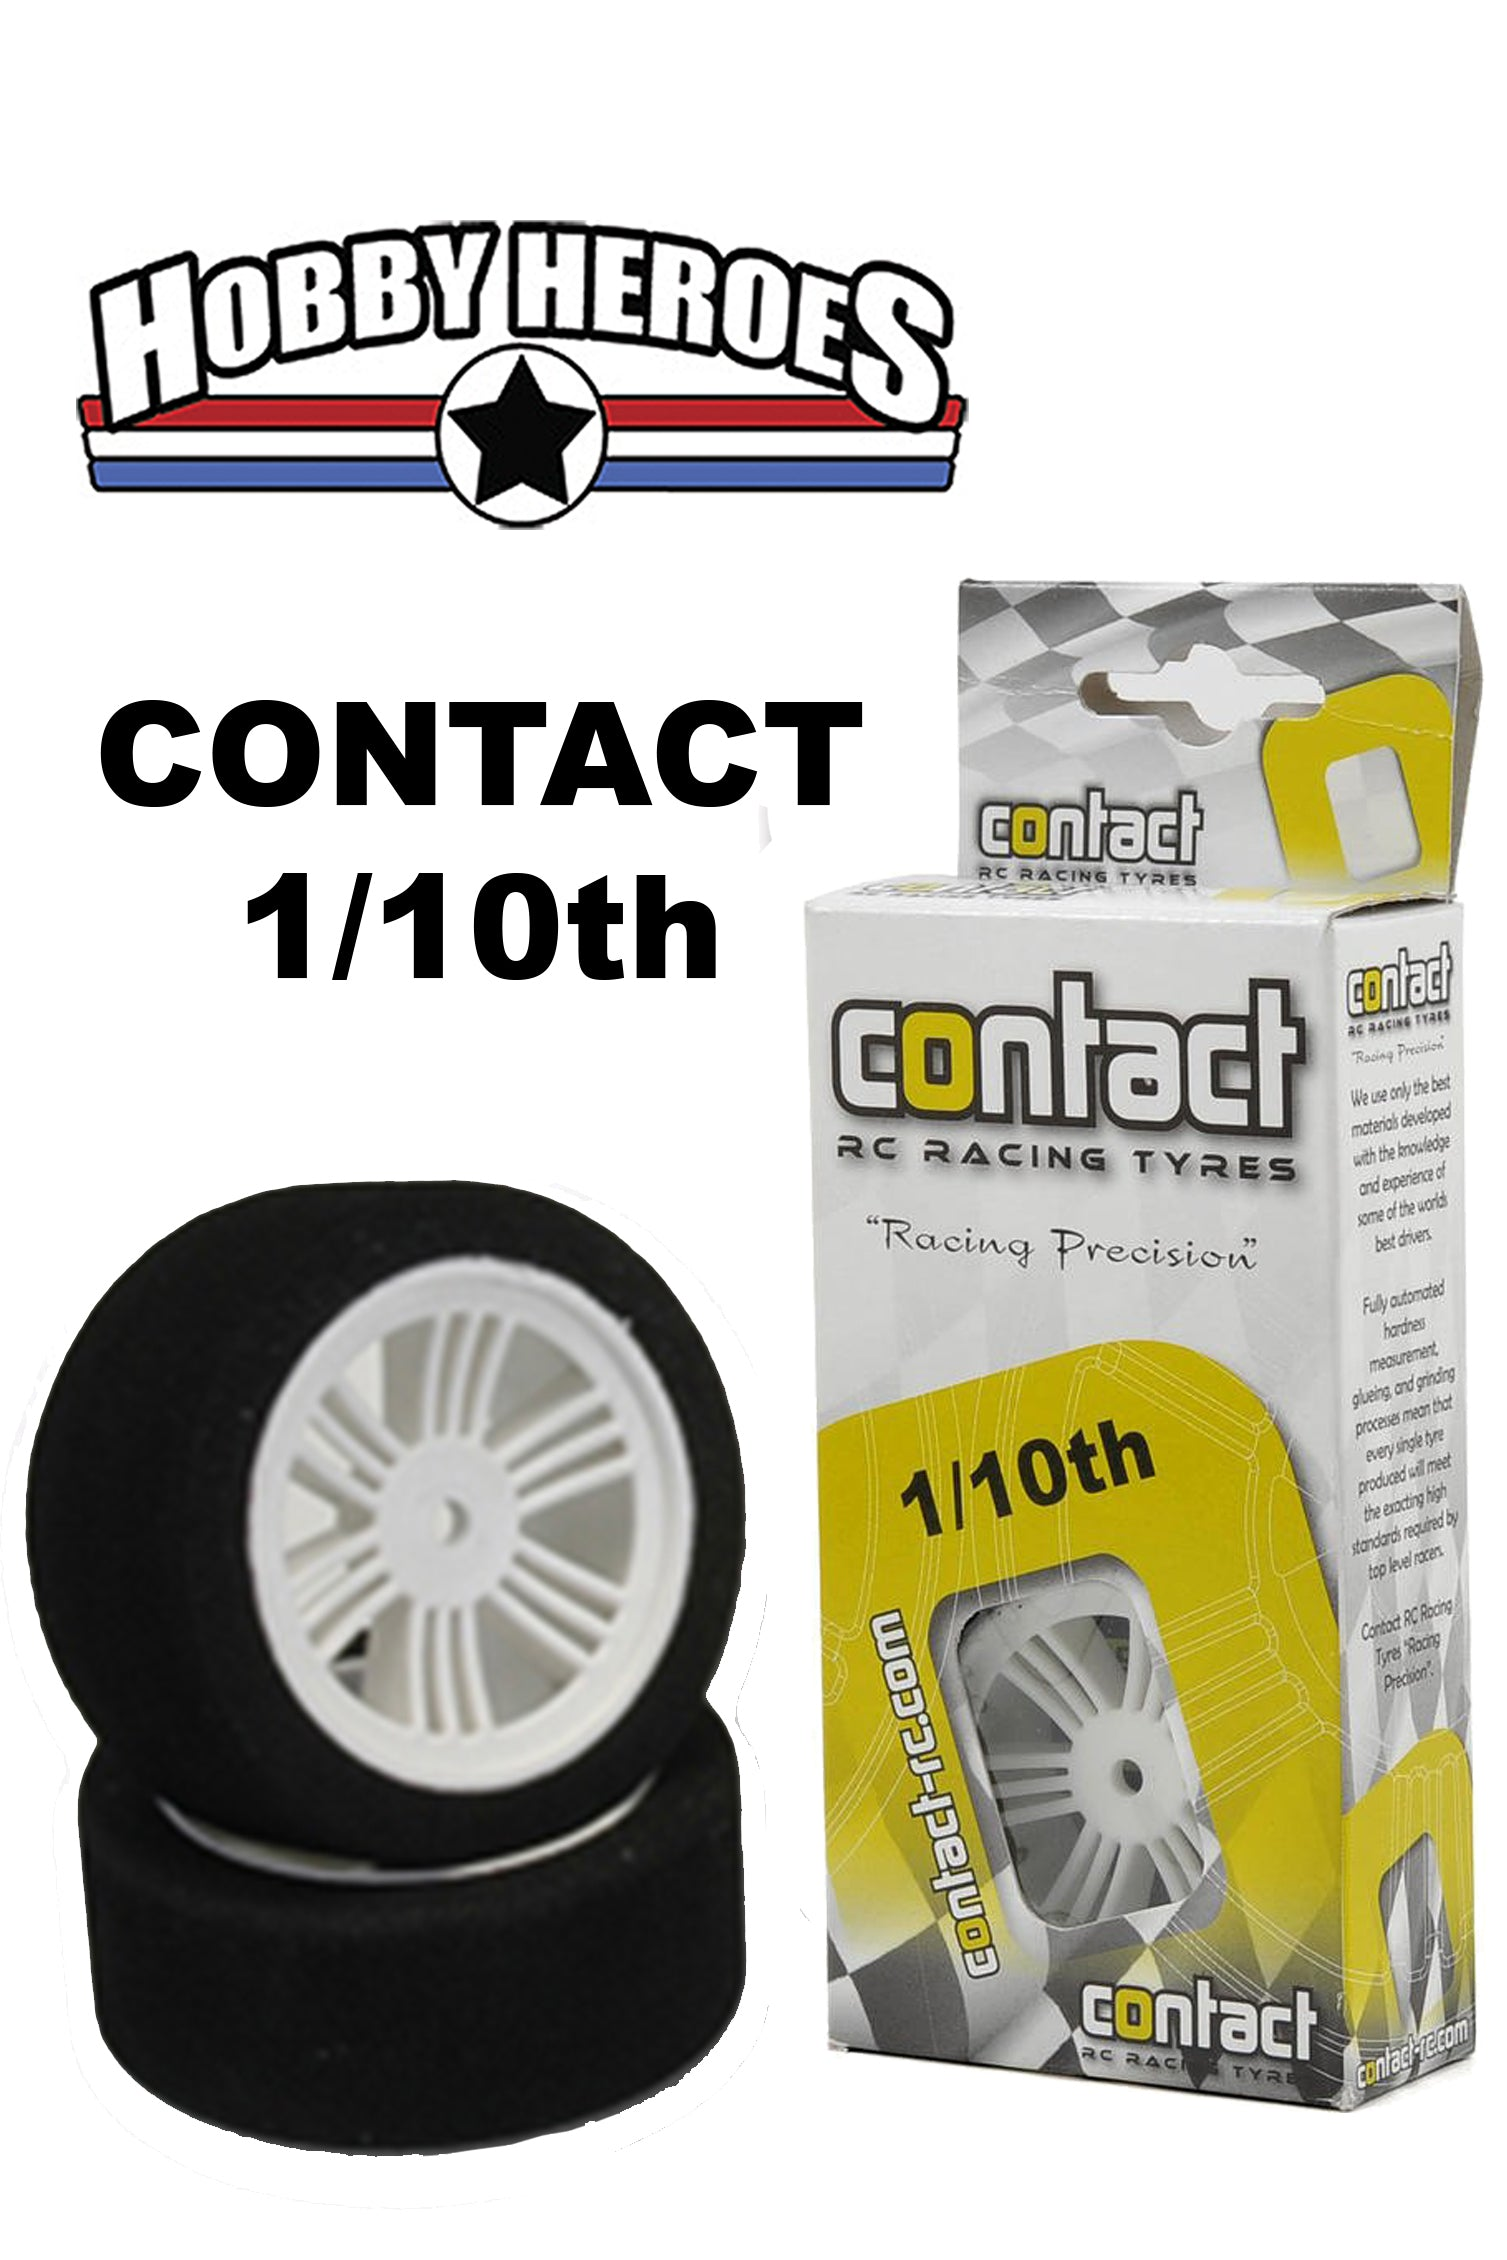 Contact 1/10 Rear 30mm 42 Shore Nylon Rim On Road Foam Tires CONJ14204